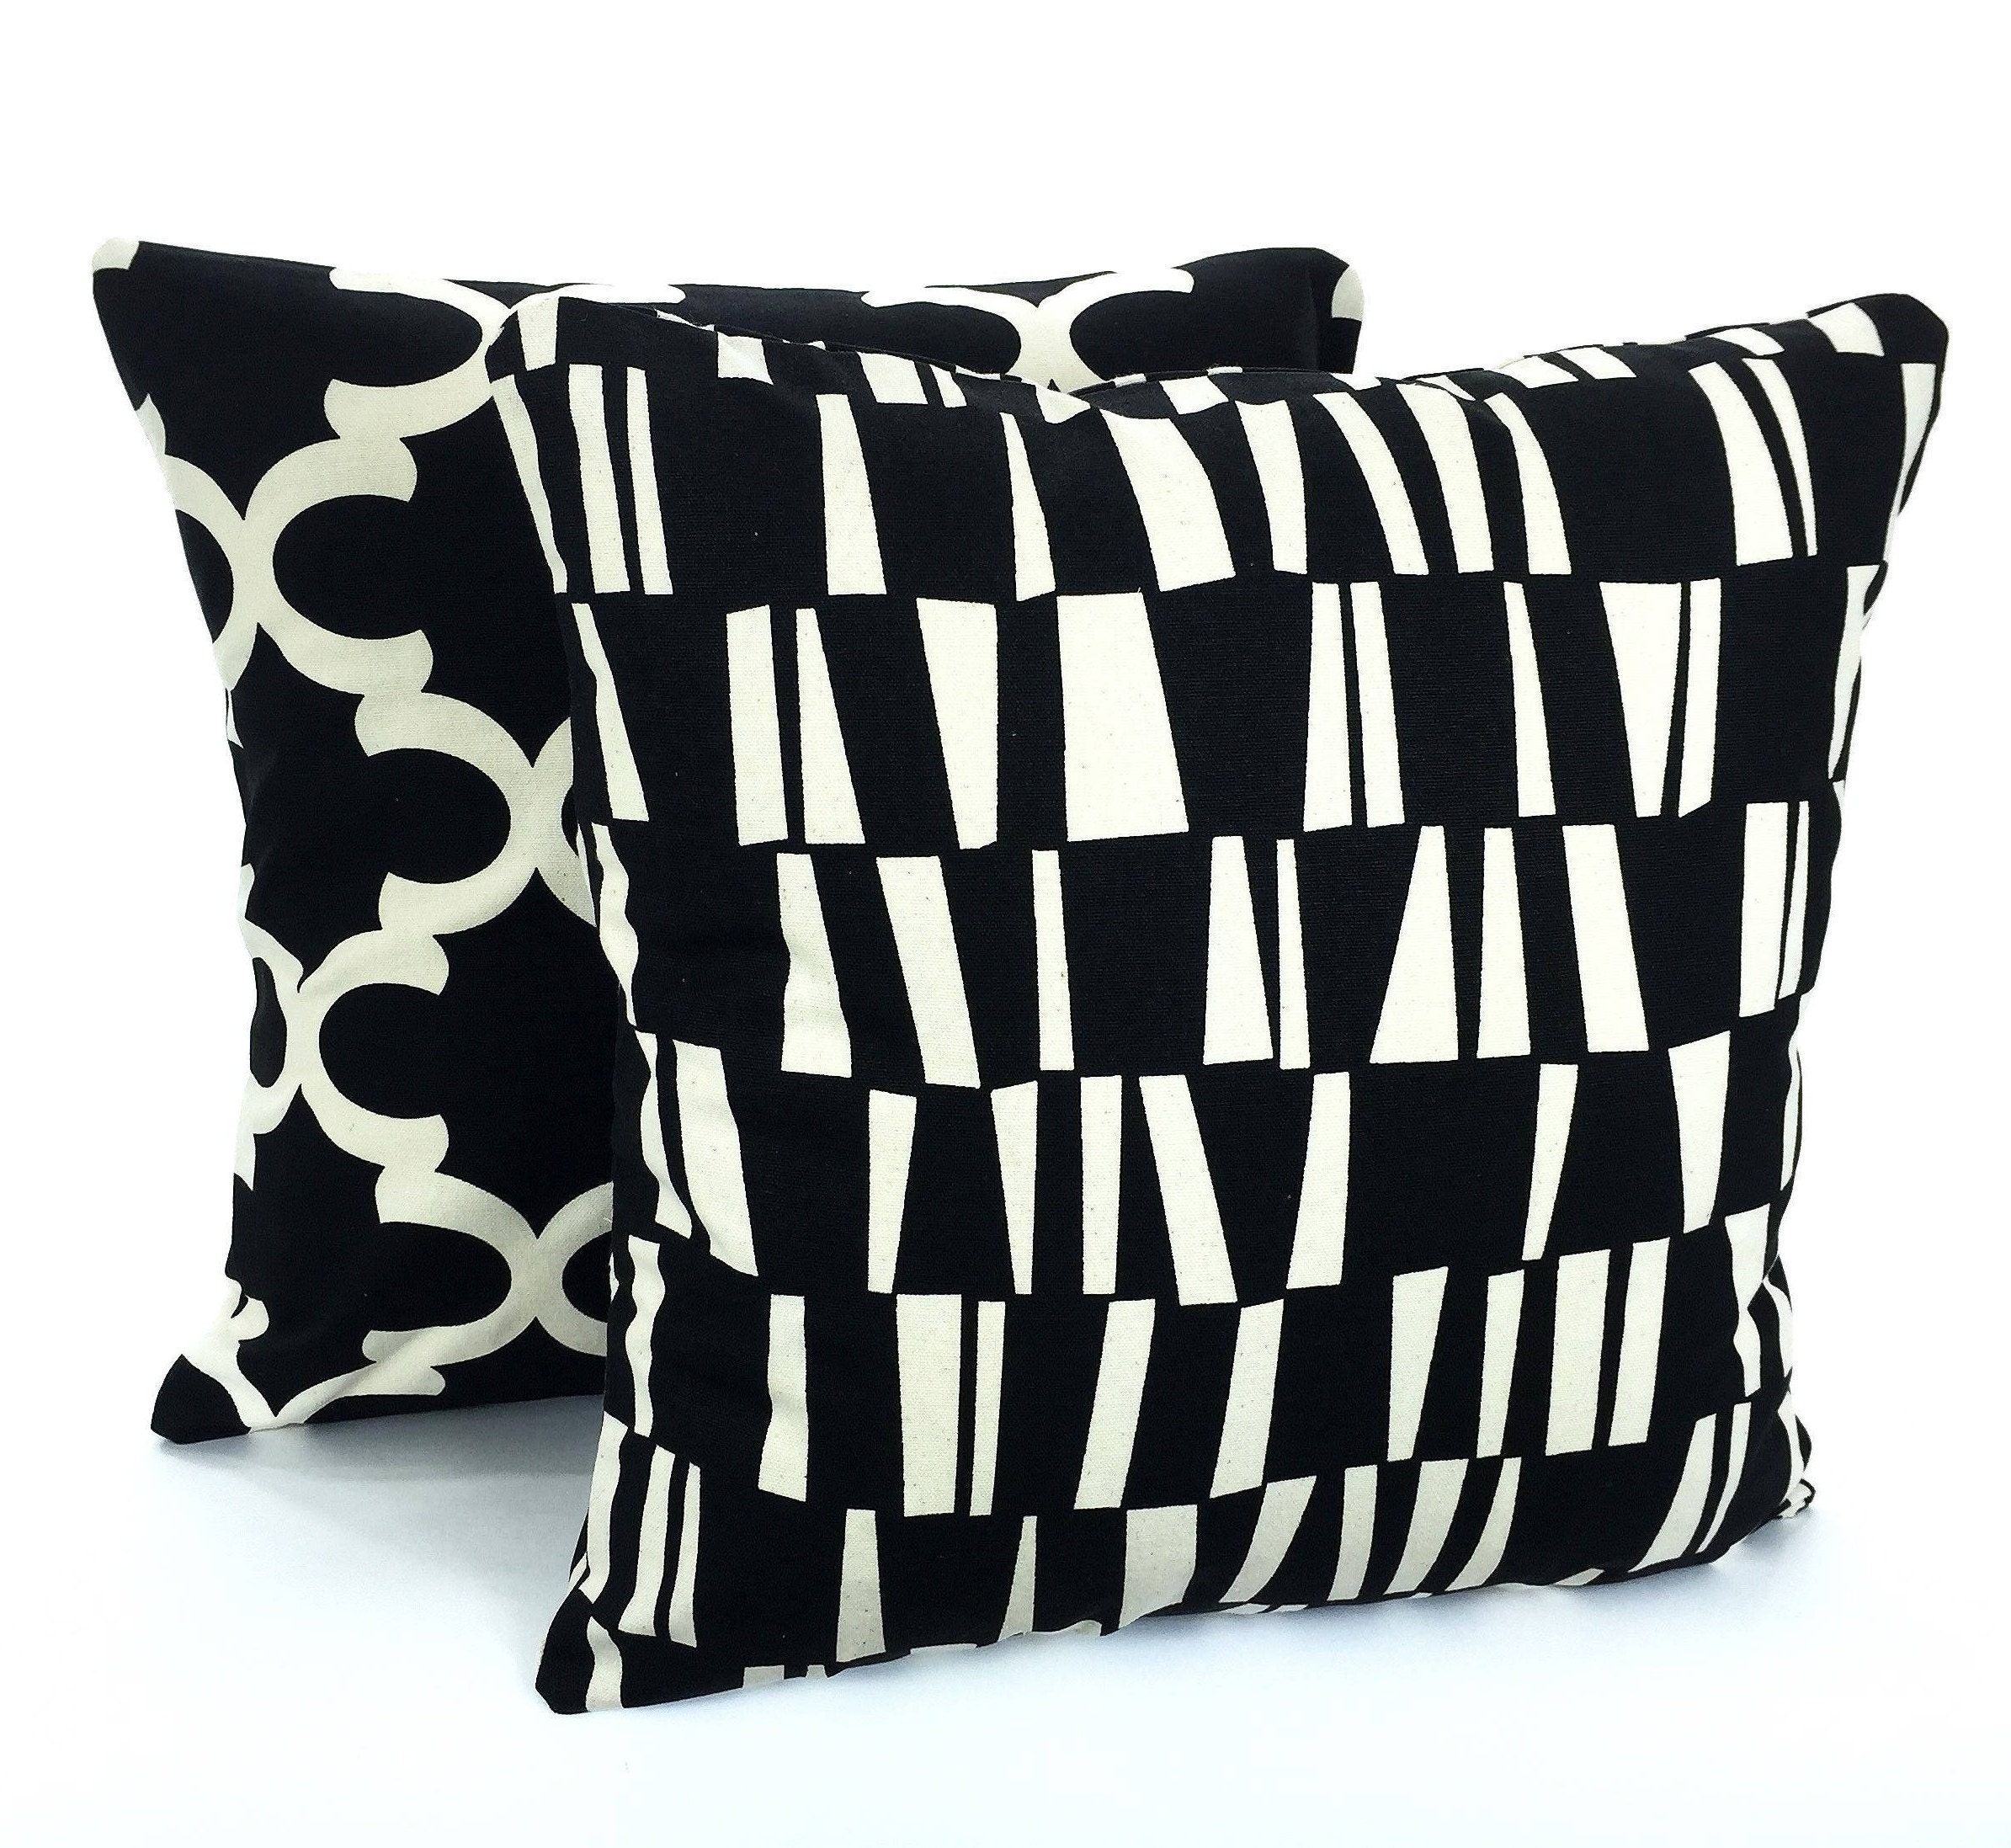 Decorative Pillow Covers Black Cream Throw Pillows Cushions Black Cream Moroccan Tile Geometric Set Of Two Various Sizes